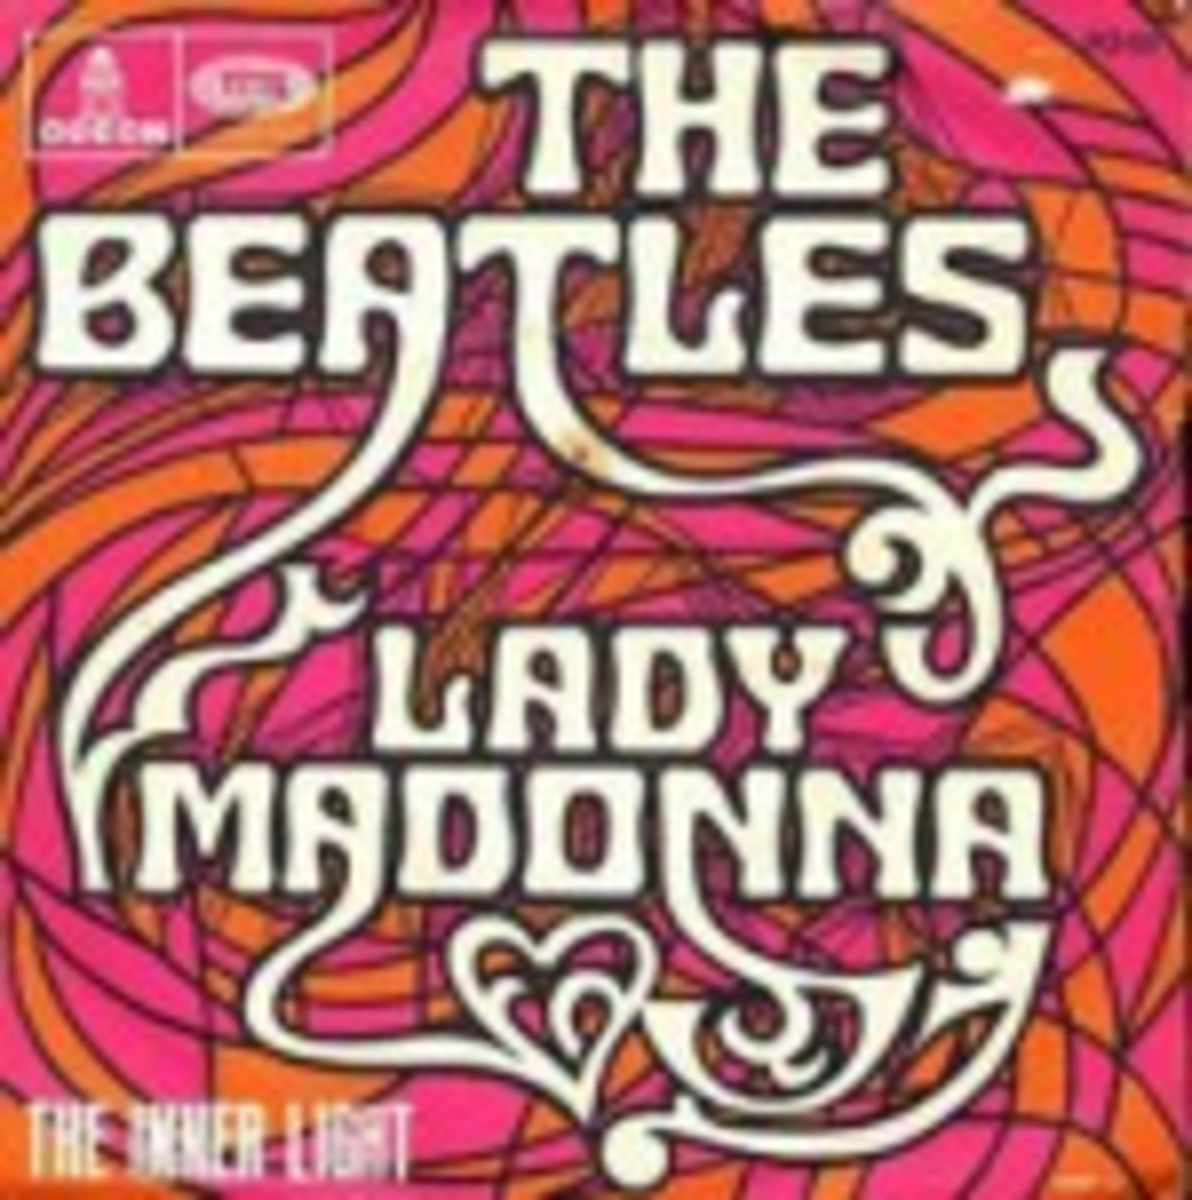 Beatles Lady Madonna FO 111 Odeon